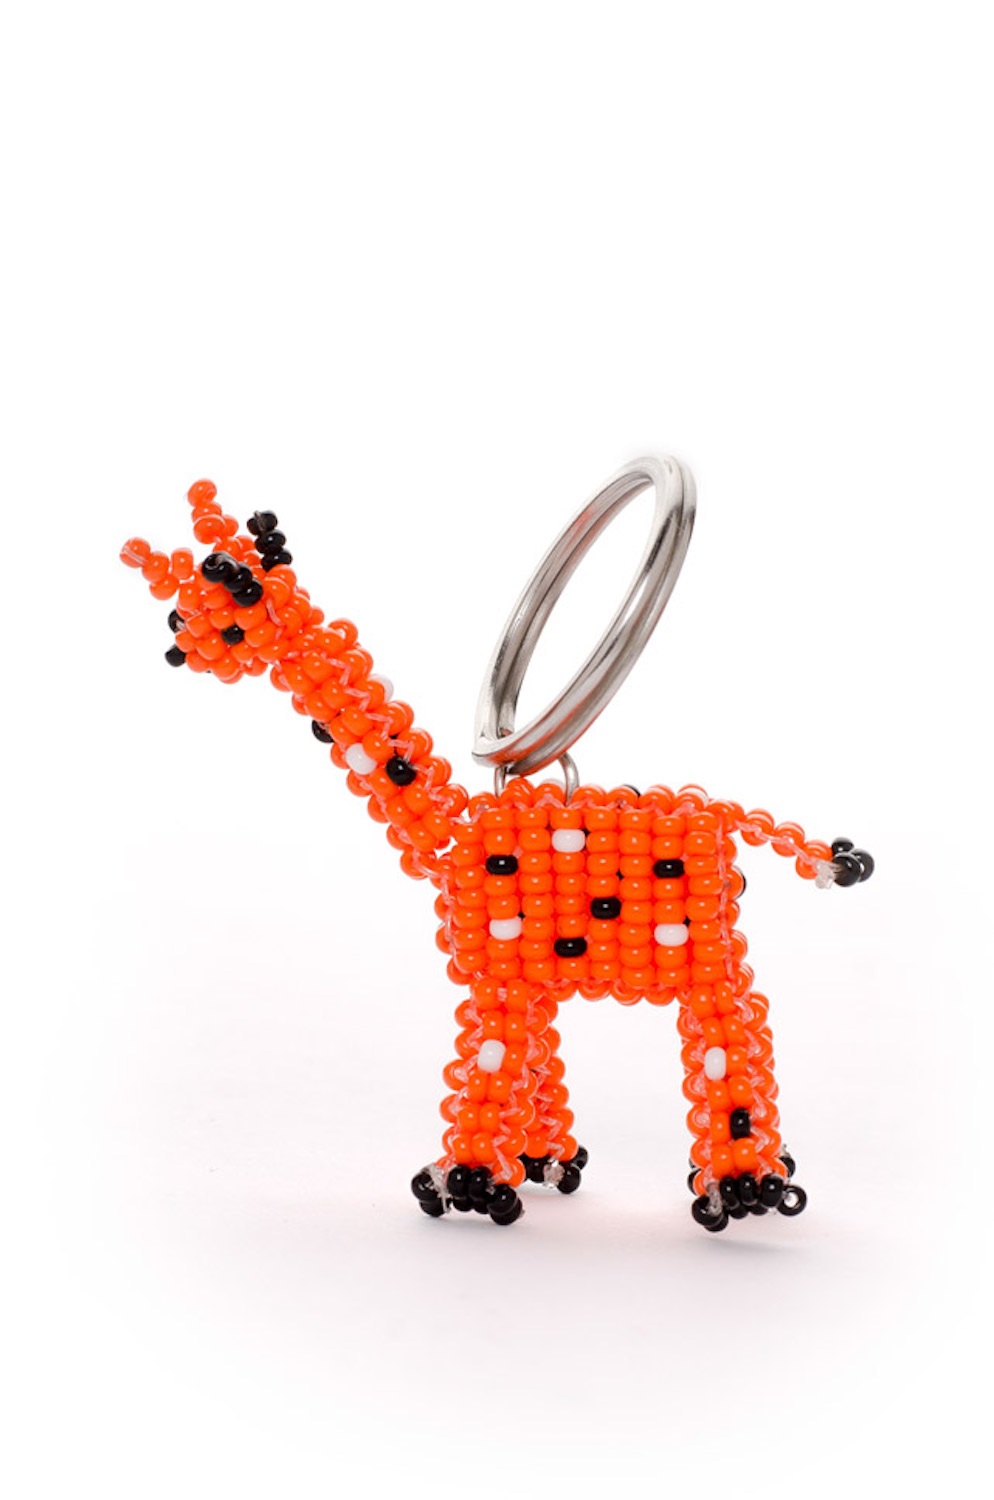 Animal Key Chain Giraffe-BW1003.jpg